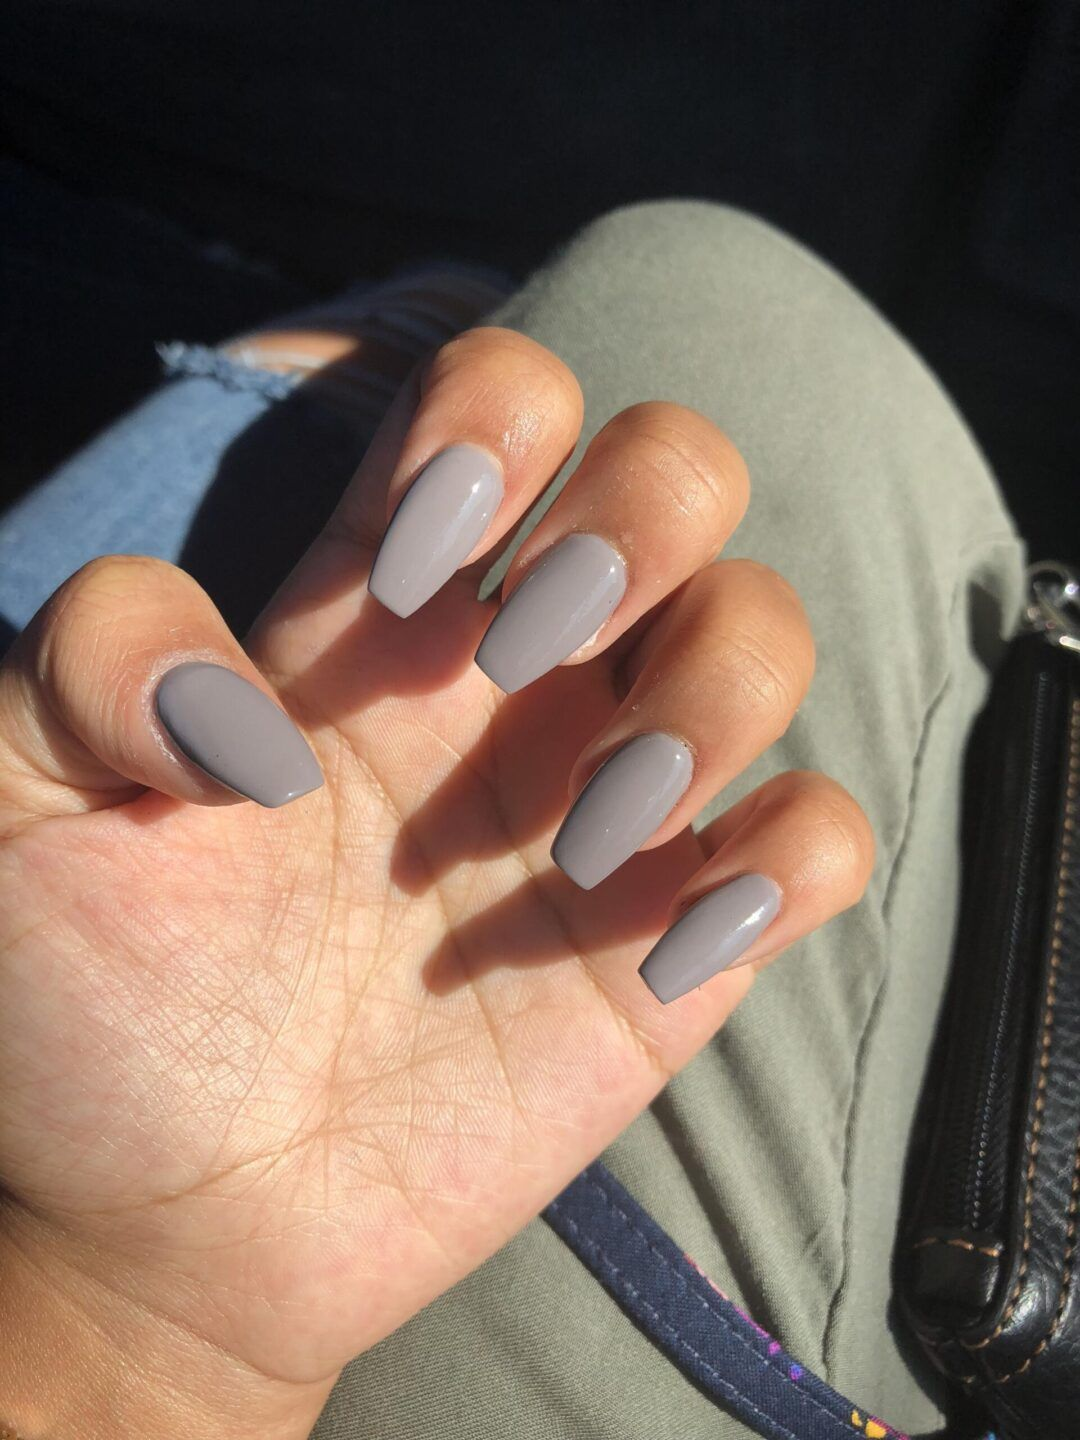 10 Popular Fall Nail Colors For 2019 An Unblurred Lady Acrylic Nails Coffin Short Best Acrylic Nails Grey Acrylic Nails